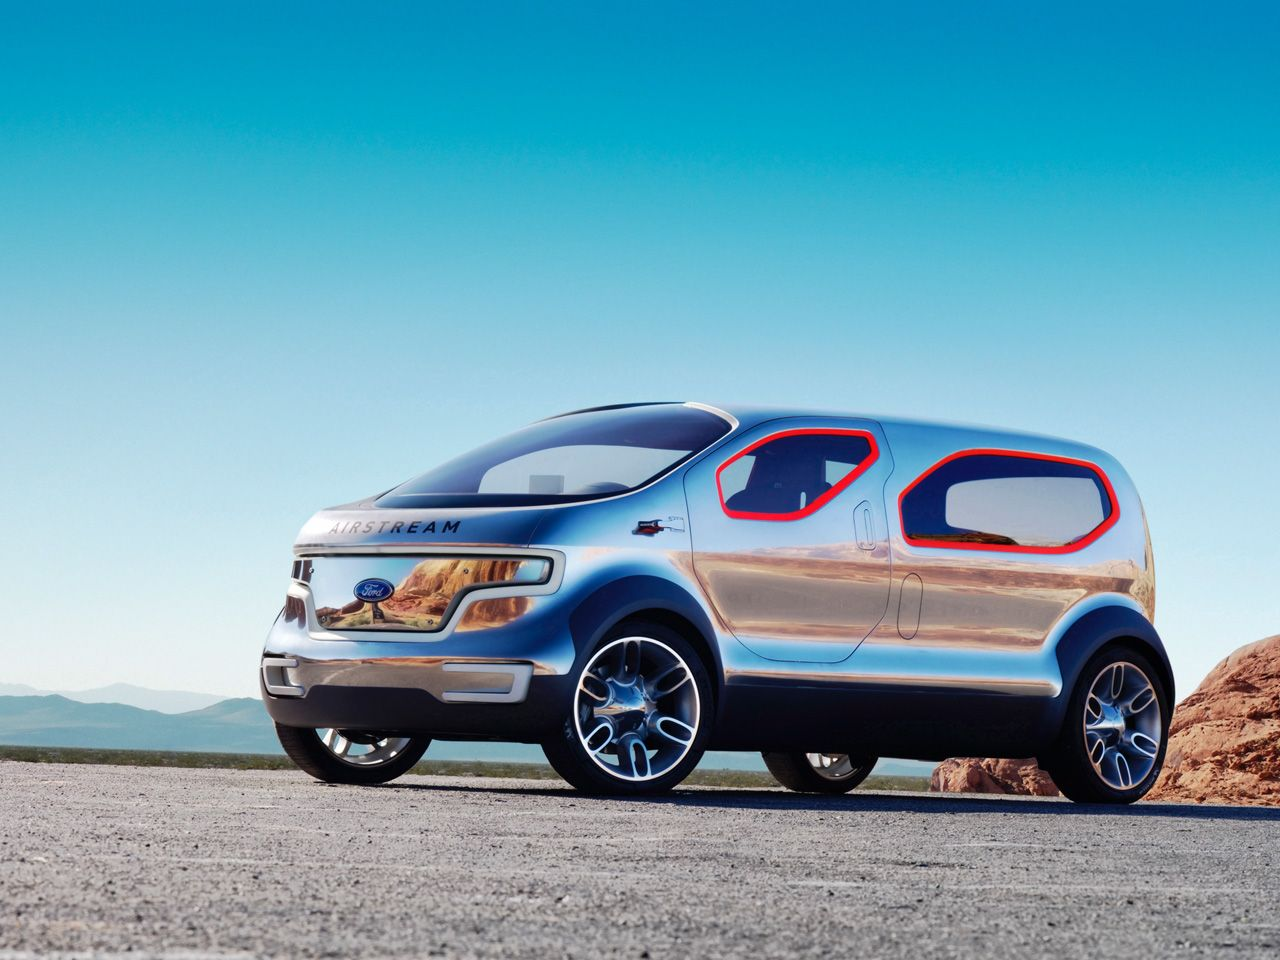 Ford Airstream Concept Concept Cars Crossover Cars Concept Car Design